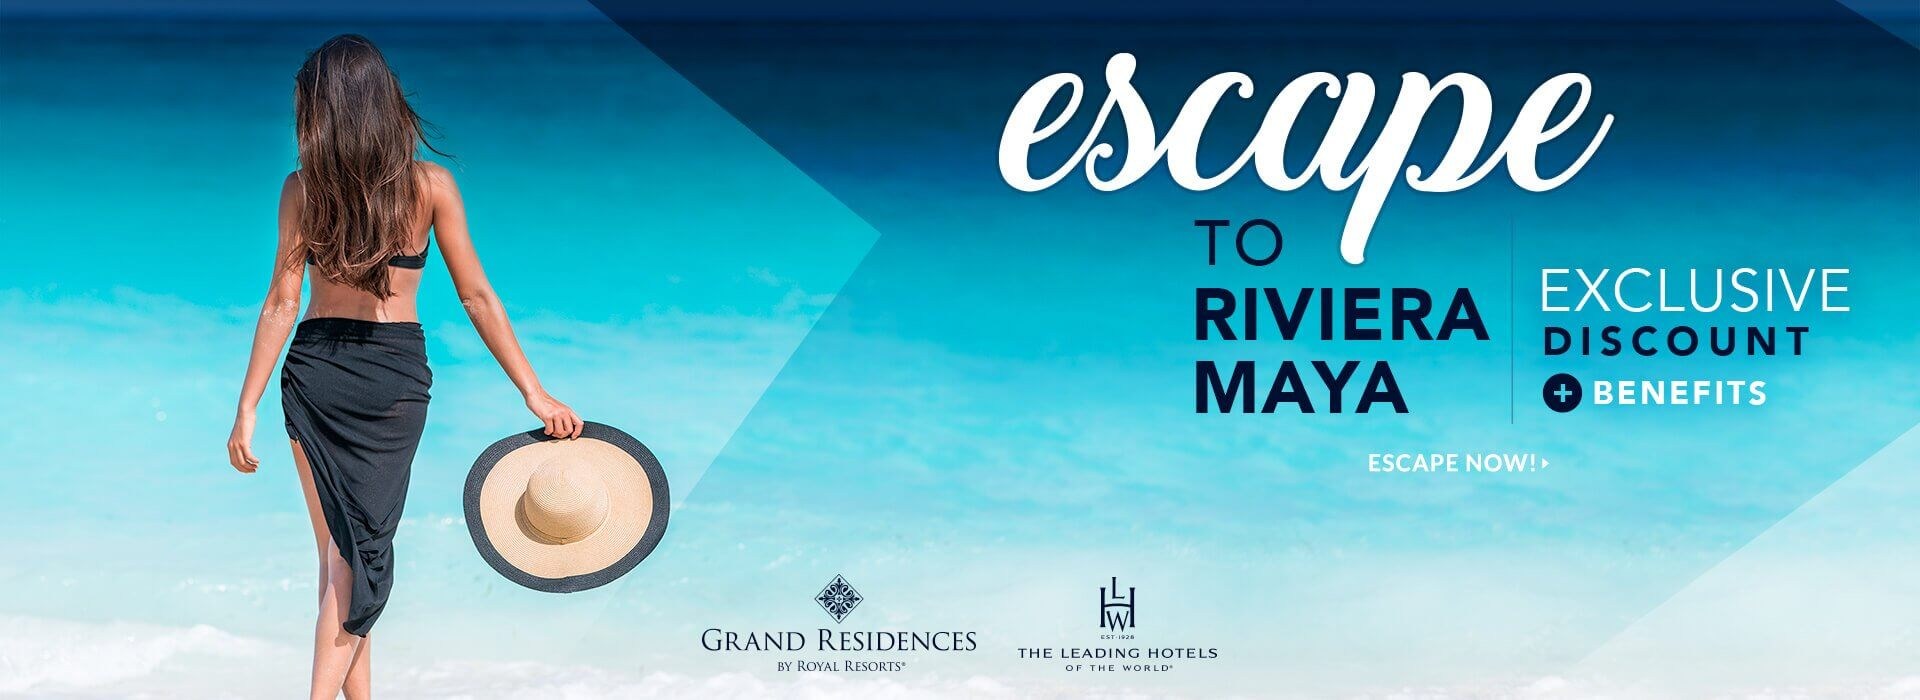 Riviera Maya Vacations Offer